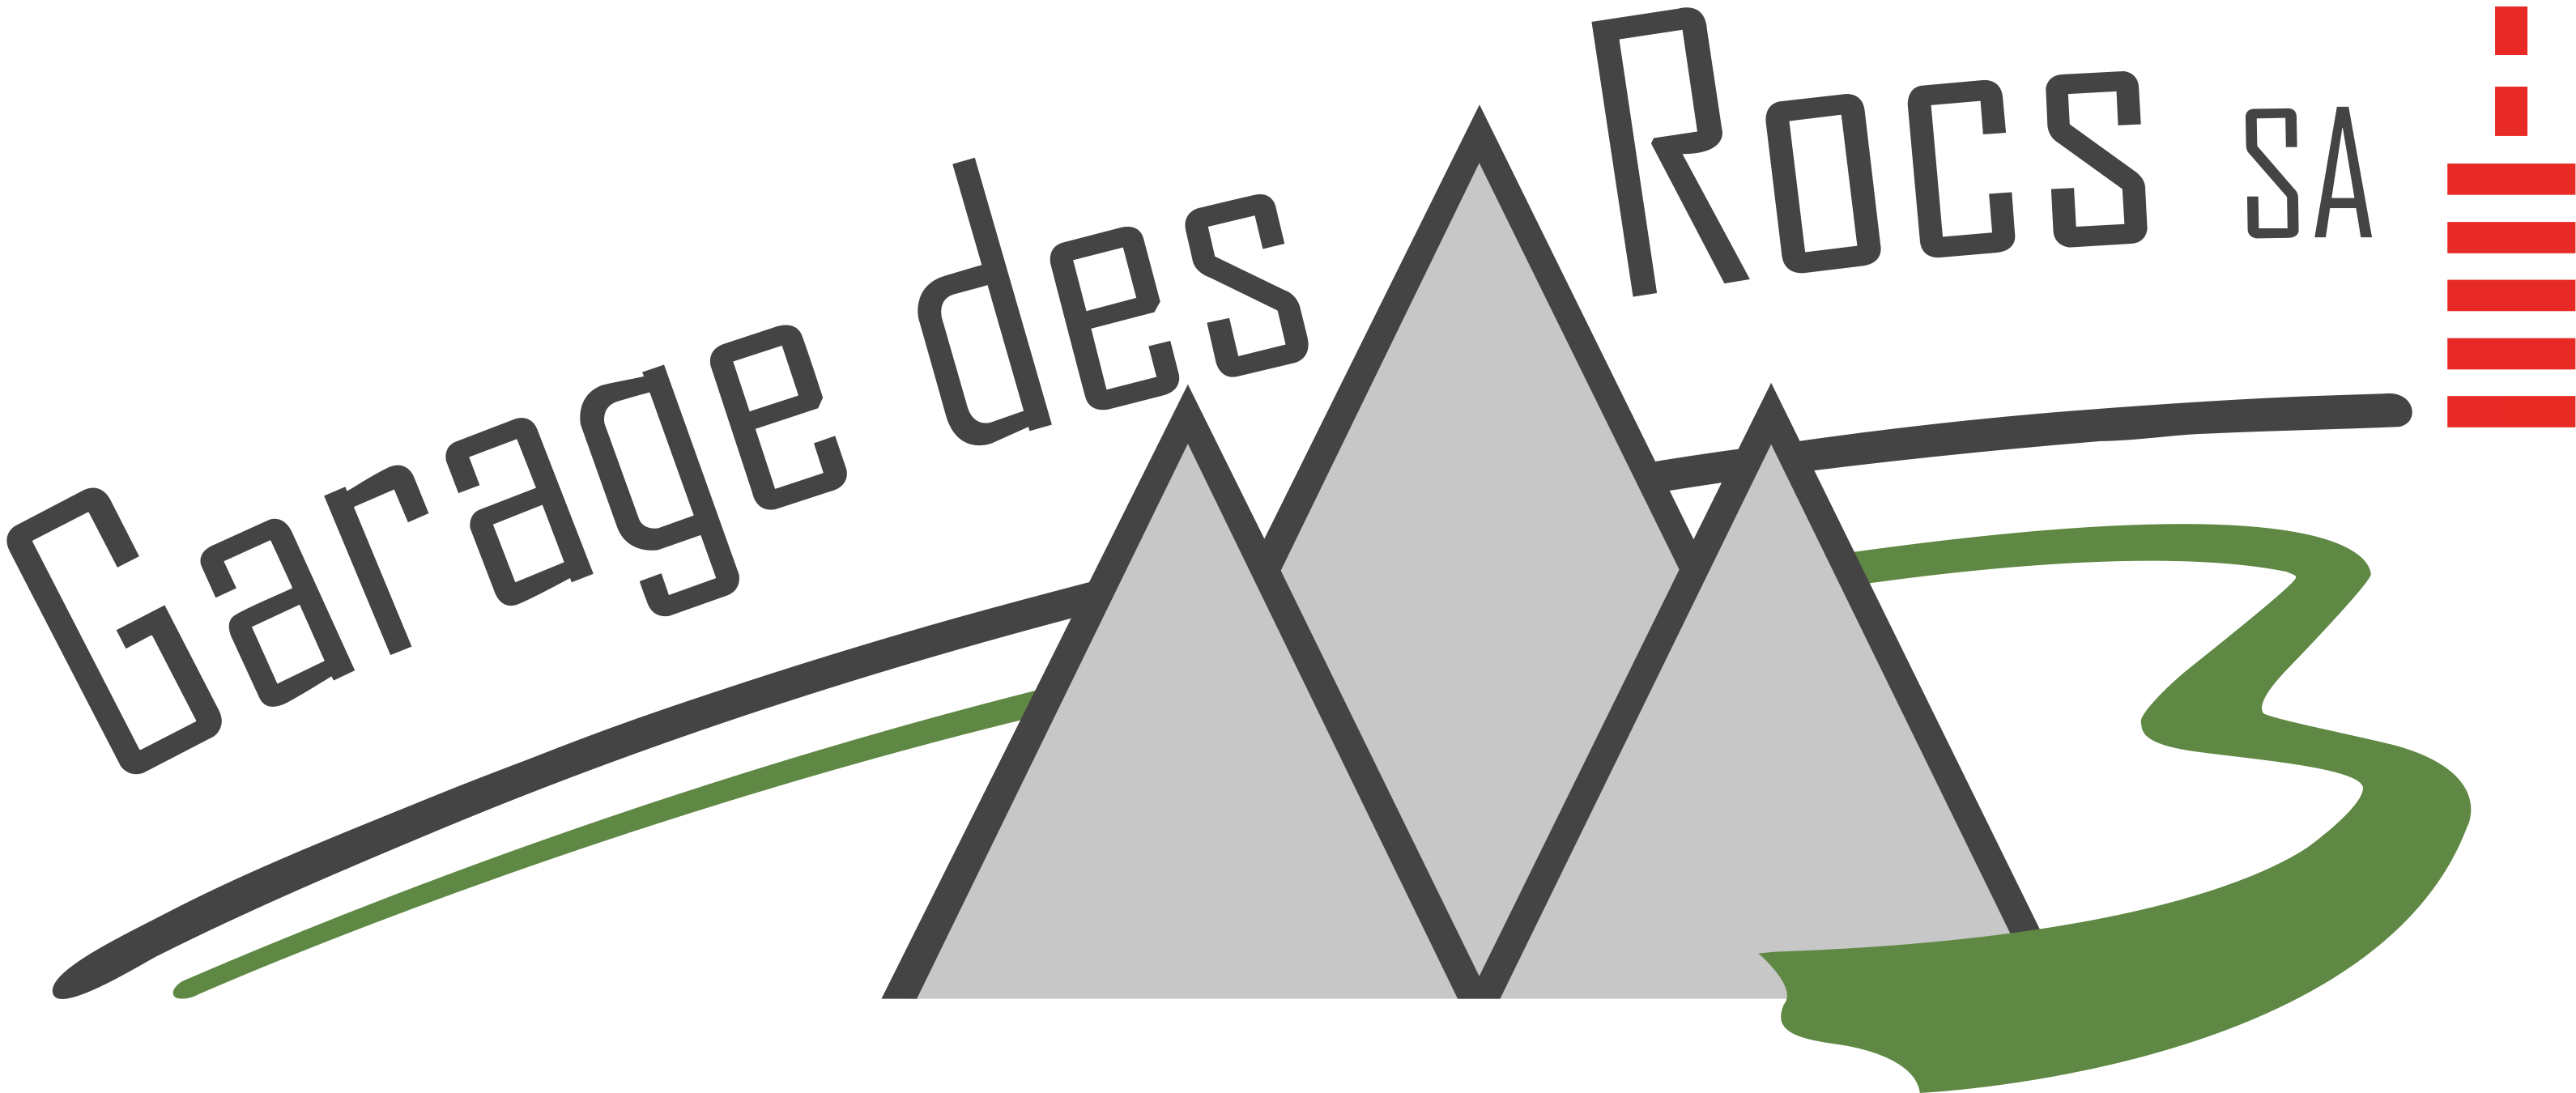 Garage des Rocs-Bienvenue sur le site du Garage des Rocs